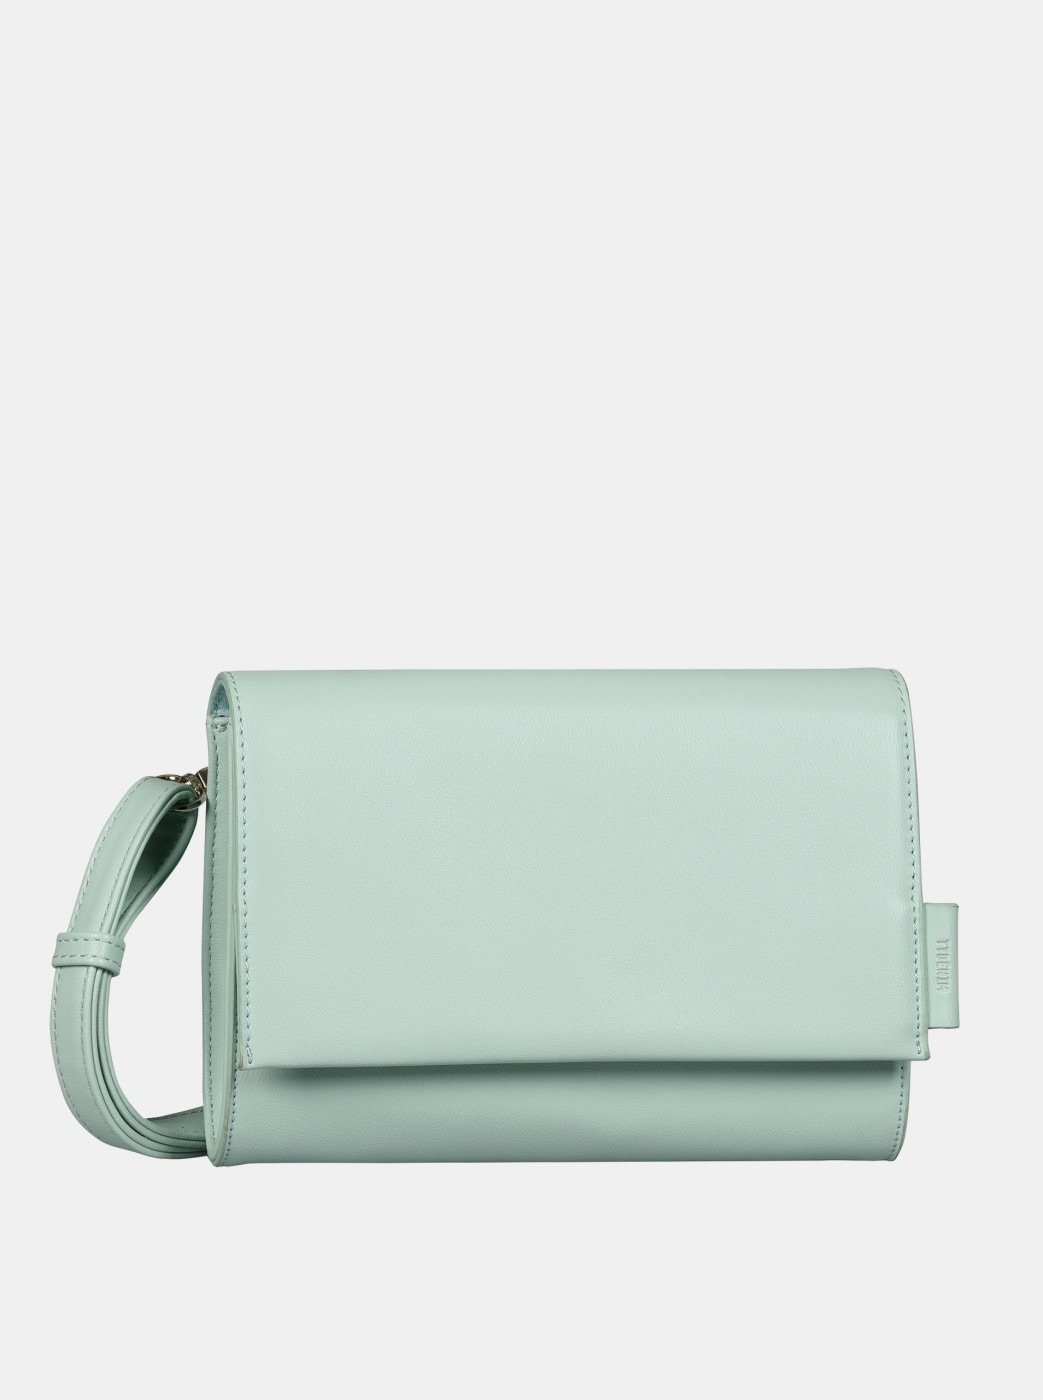 Tom Tailor Denim Almeria Menthol Clutch